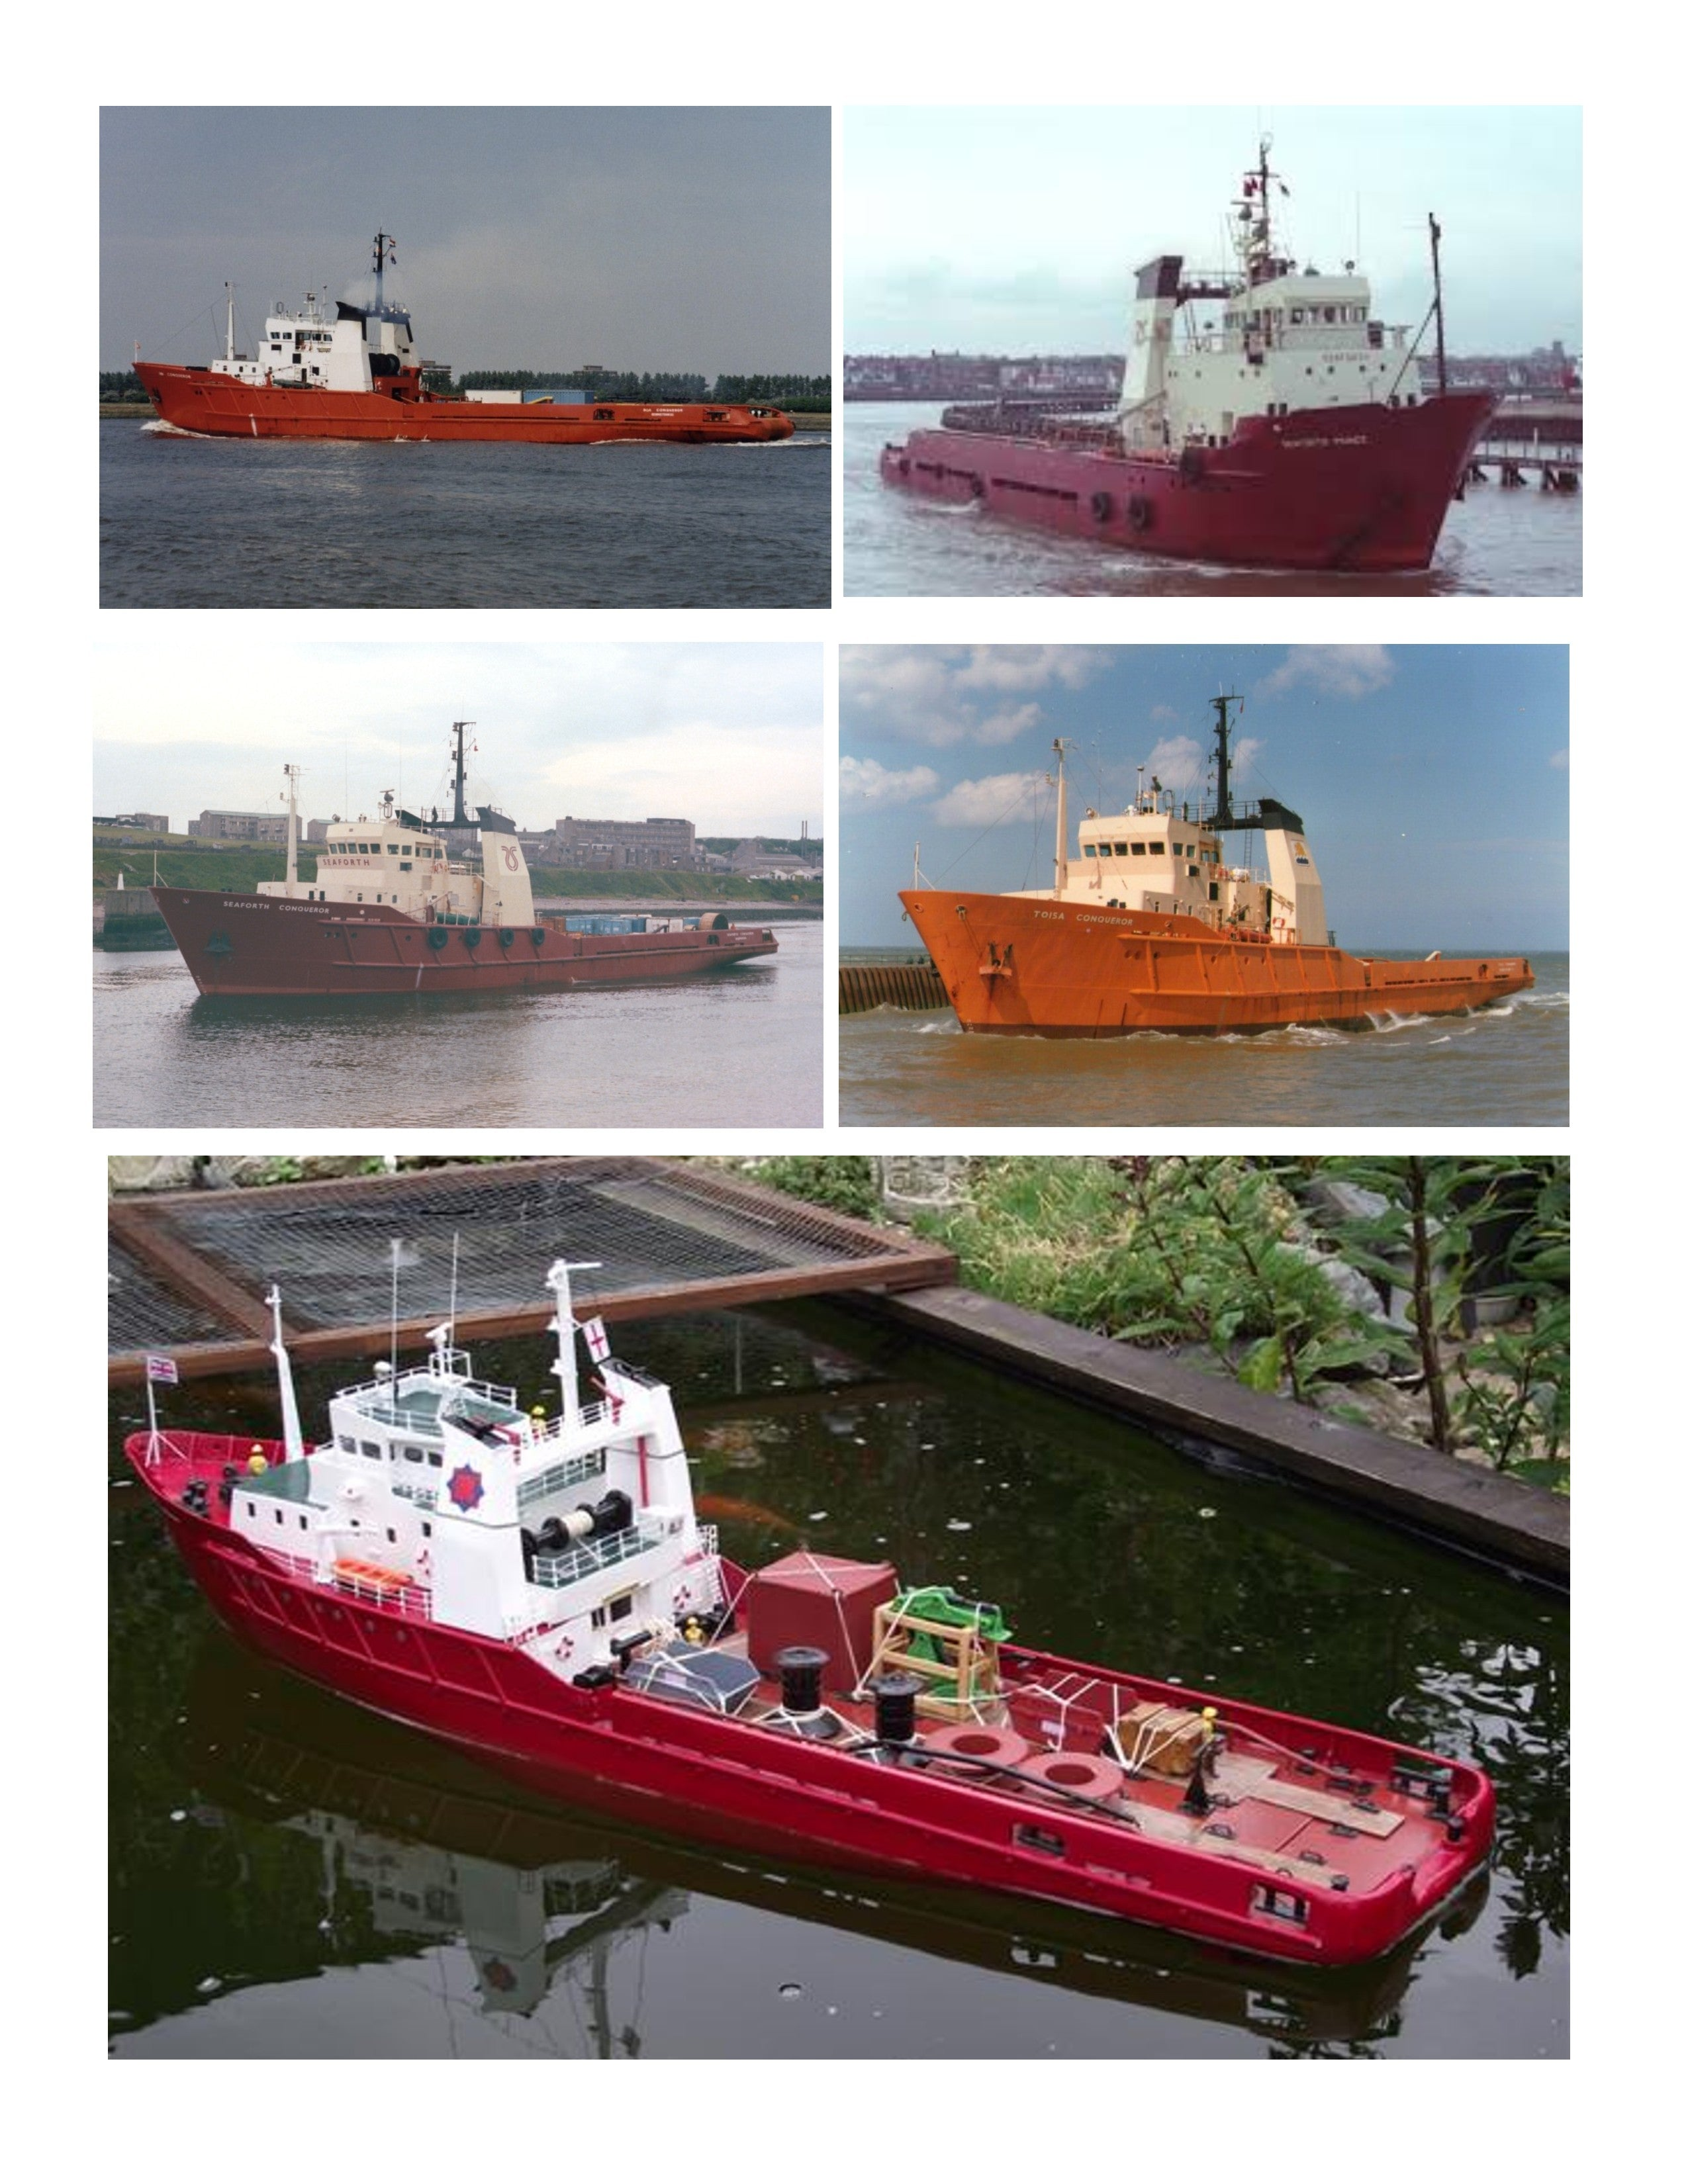 Full Size Printed Plan Scale 1:75 Anchor Handling Tug Supply Ship suitable for Radio Control